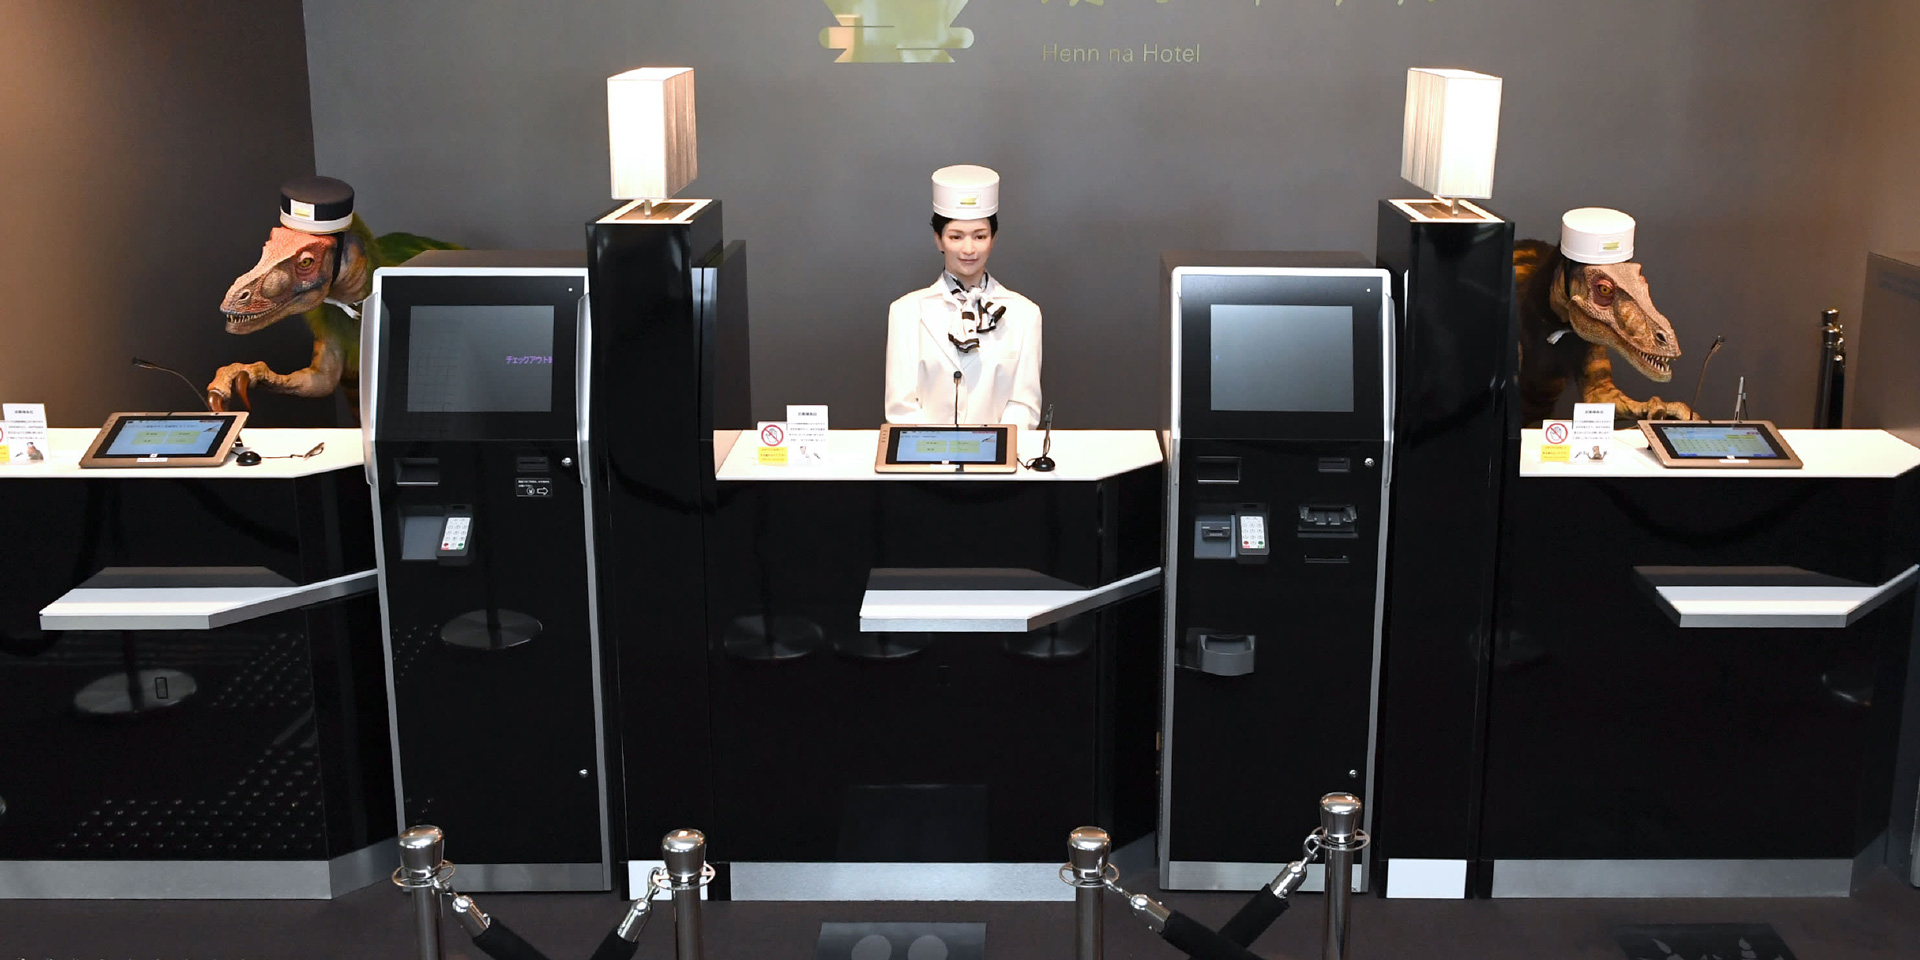 Hotel guests enjoy robot staffers, early indications show